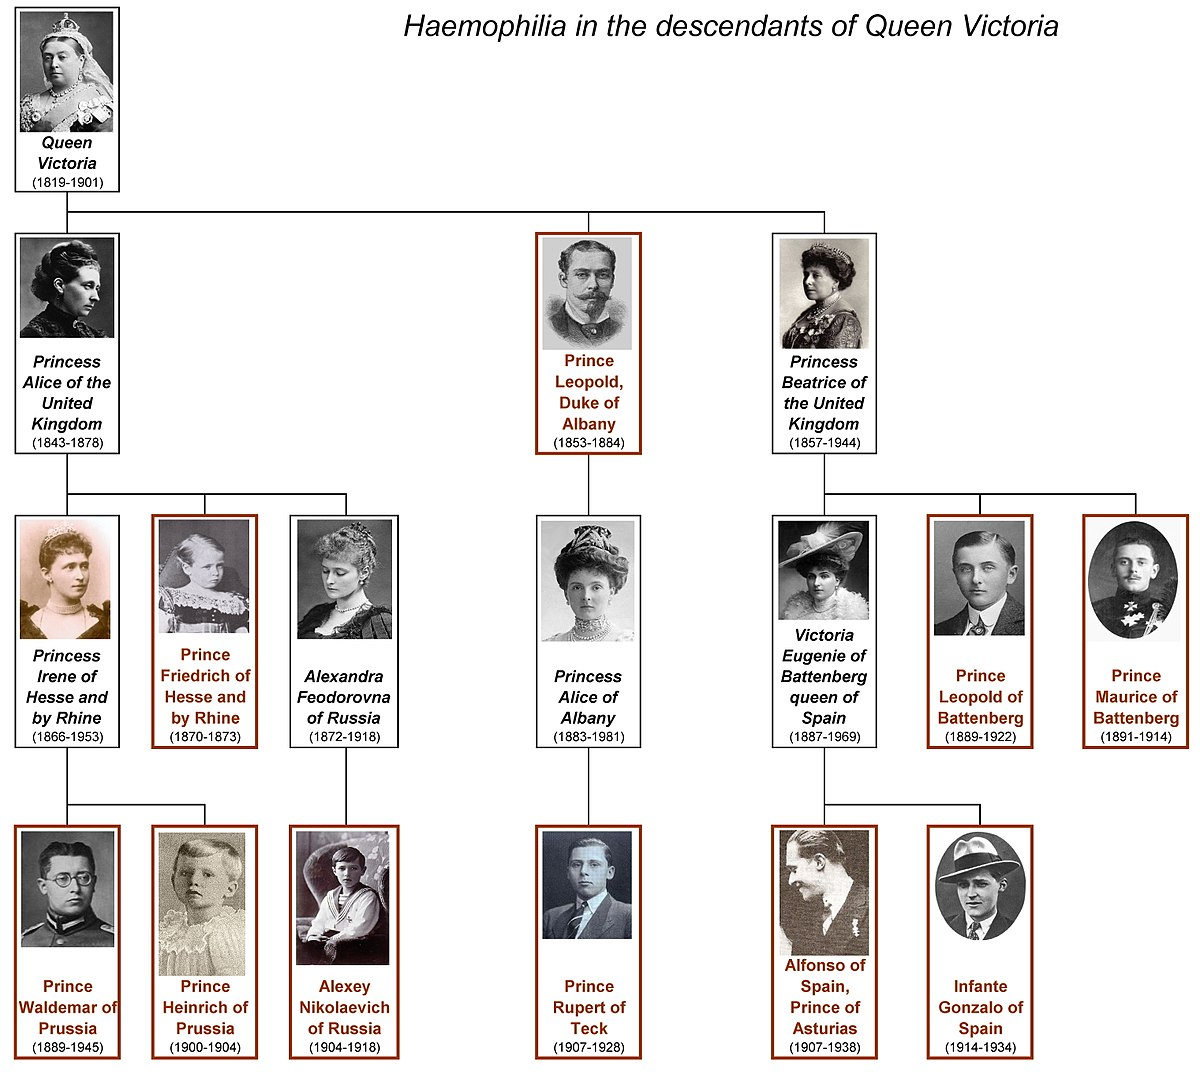 haemophilia in european royalty